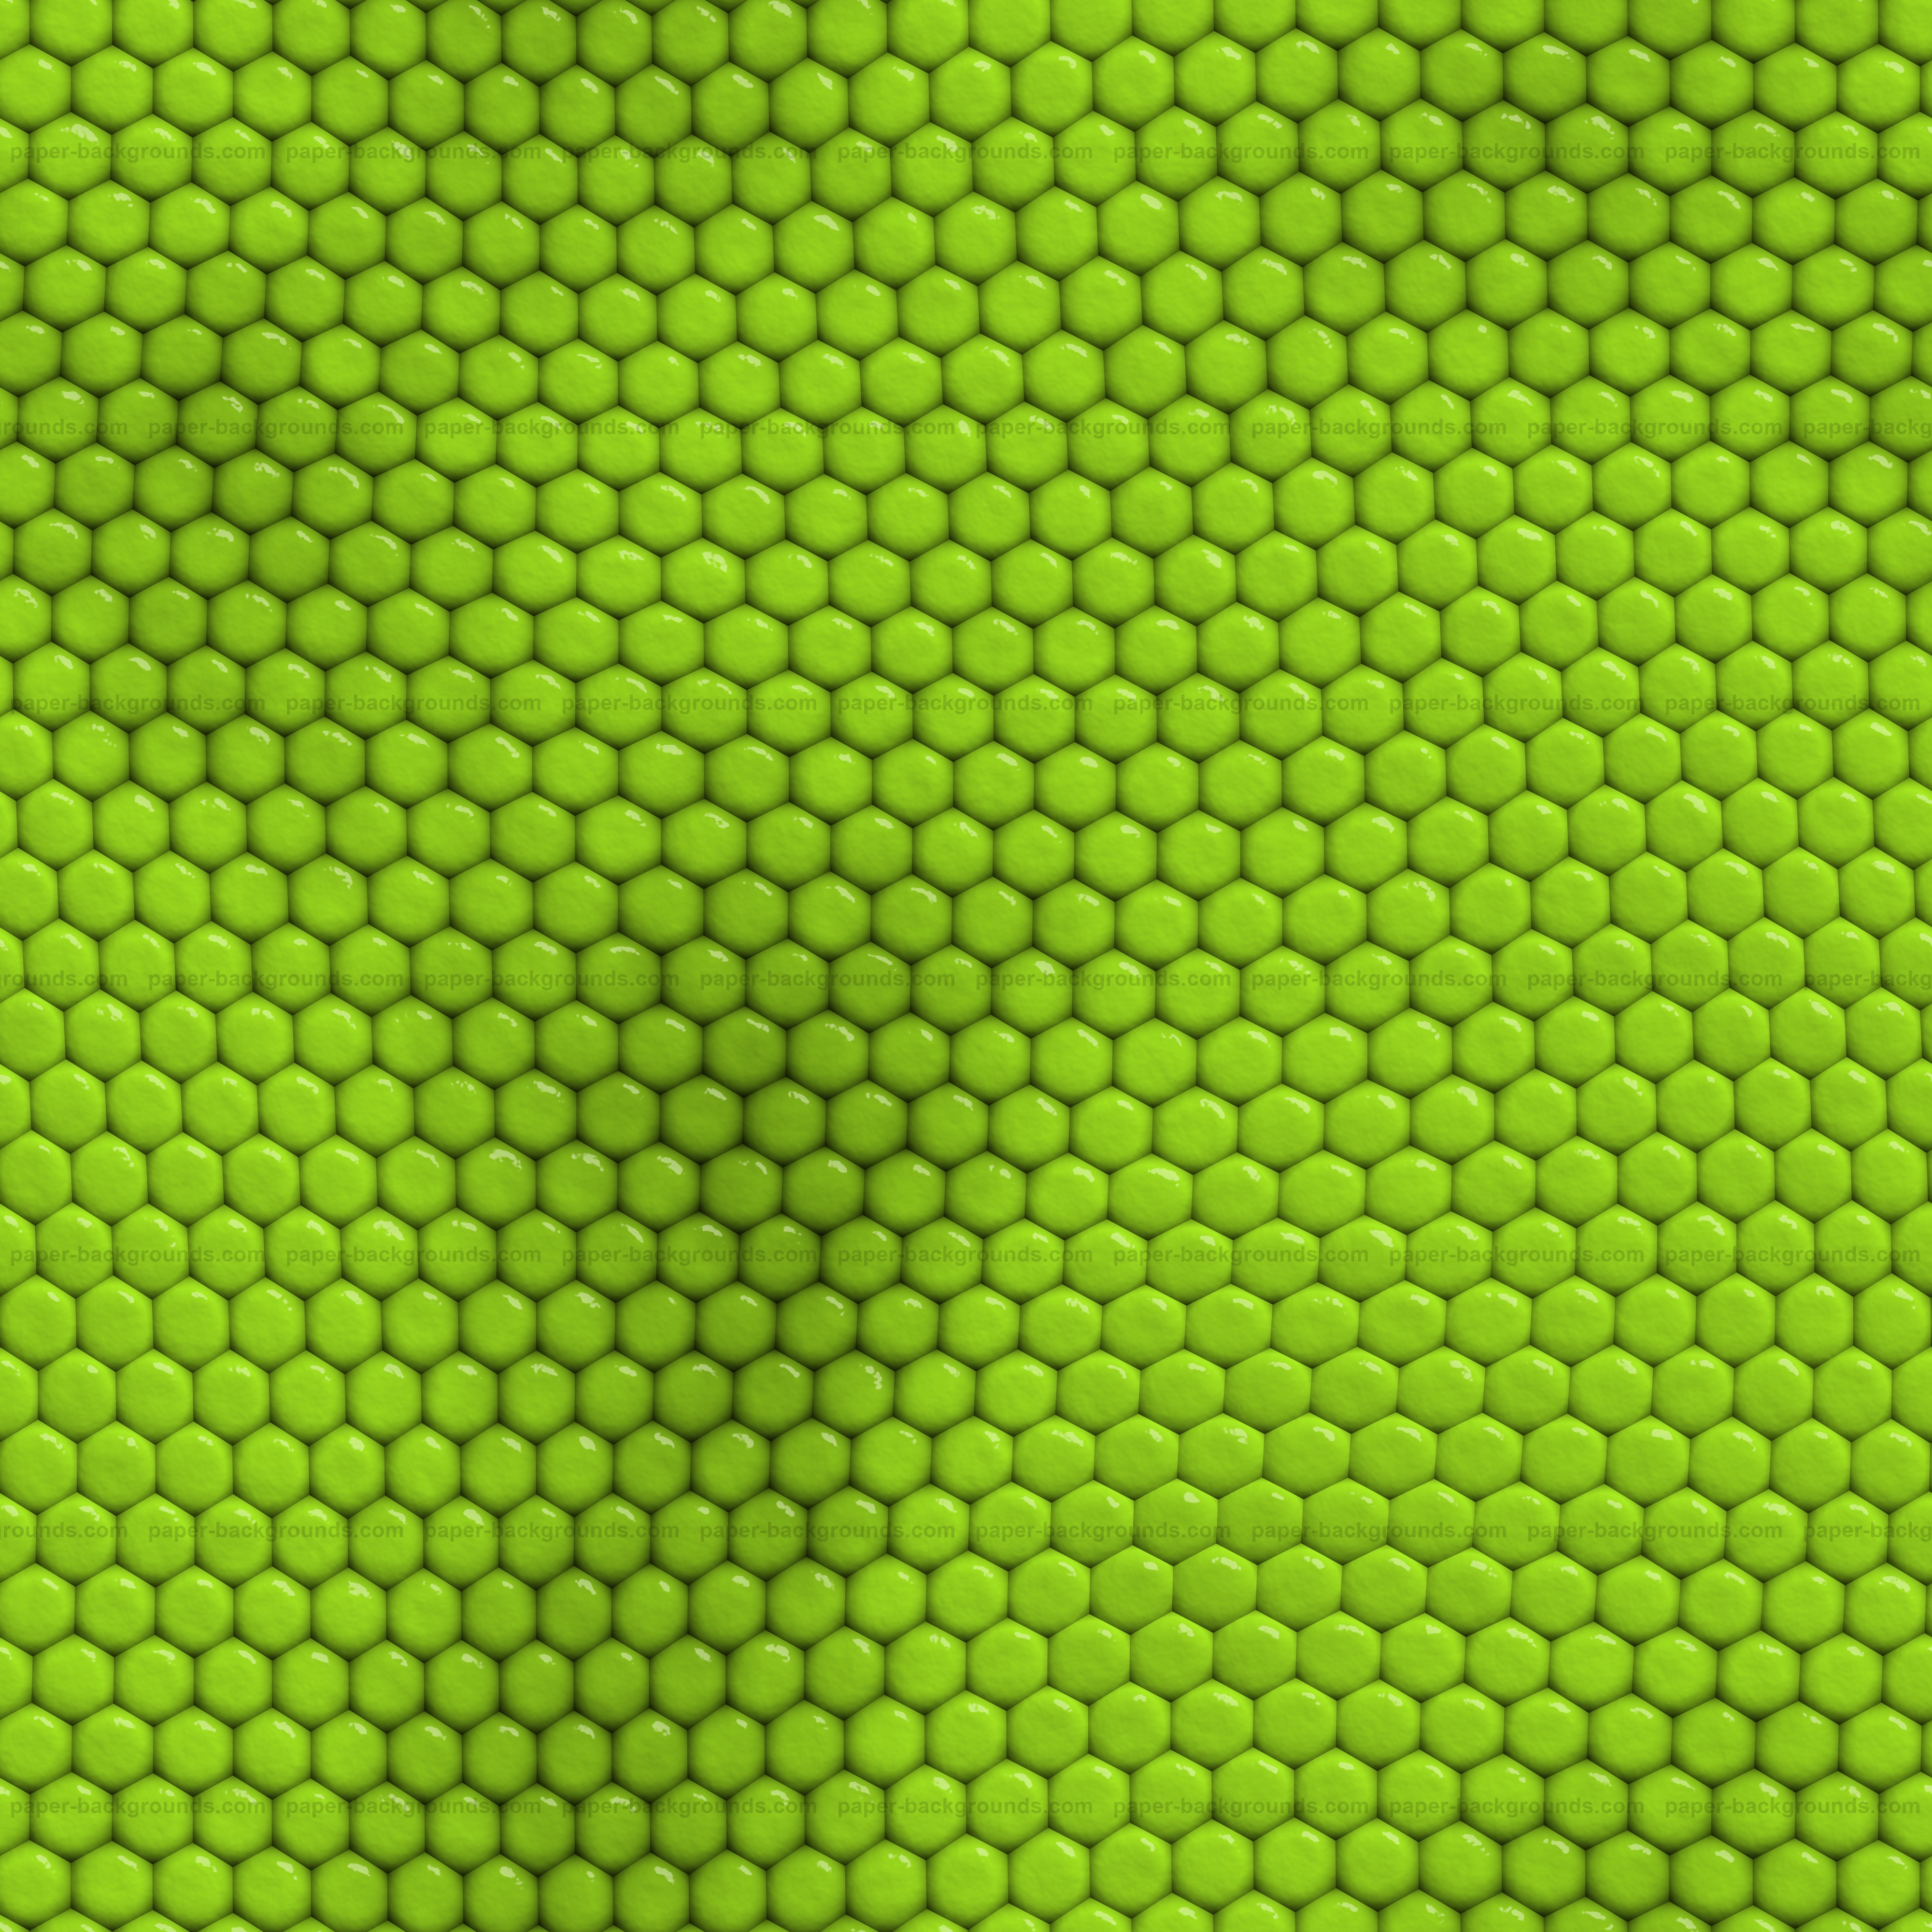 Paper backgrounds stones textures royalty free hd paper - Paper Backgrounds Seamless Green Iguana Reptile Skin